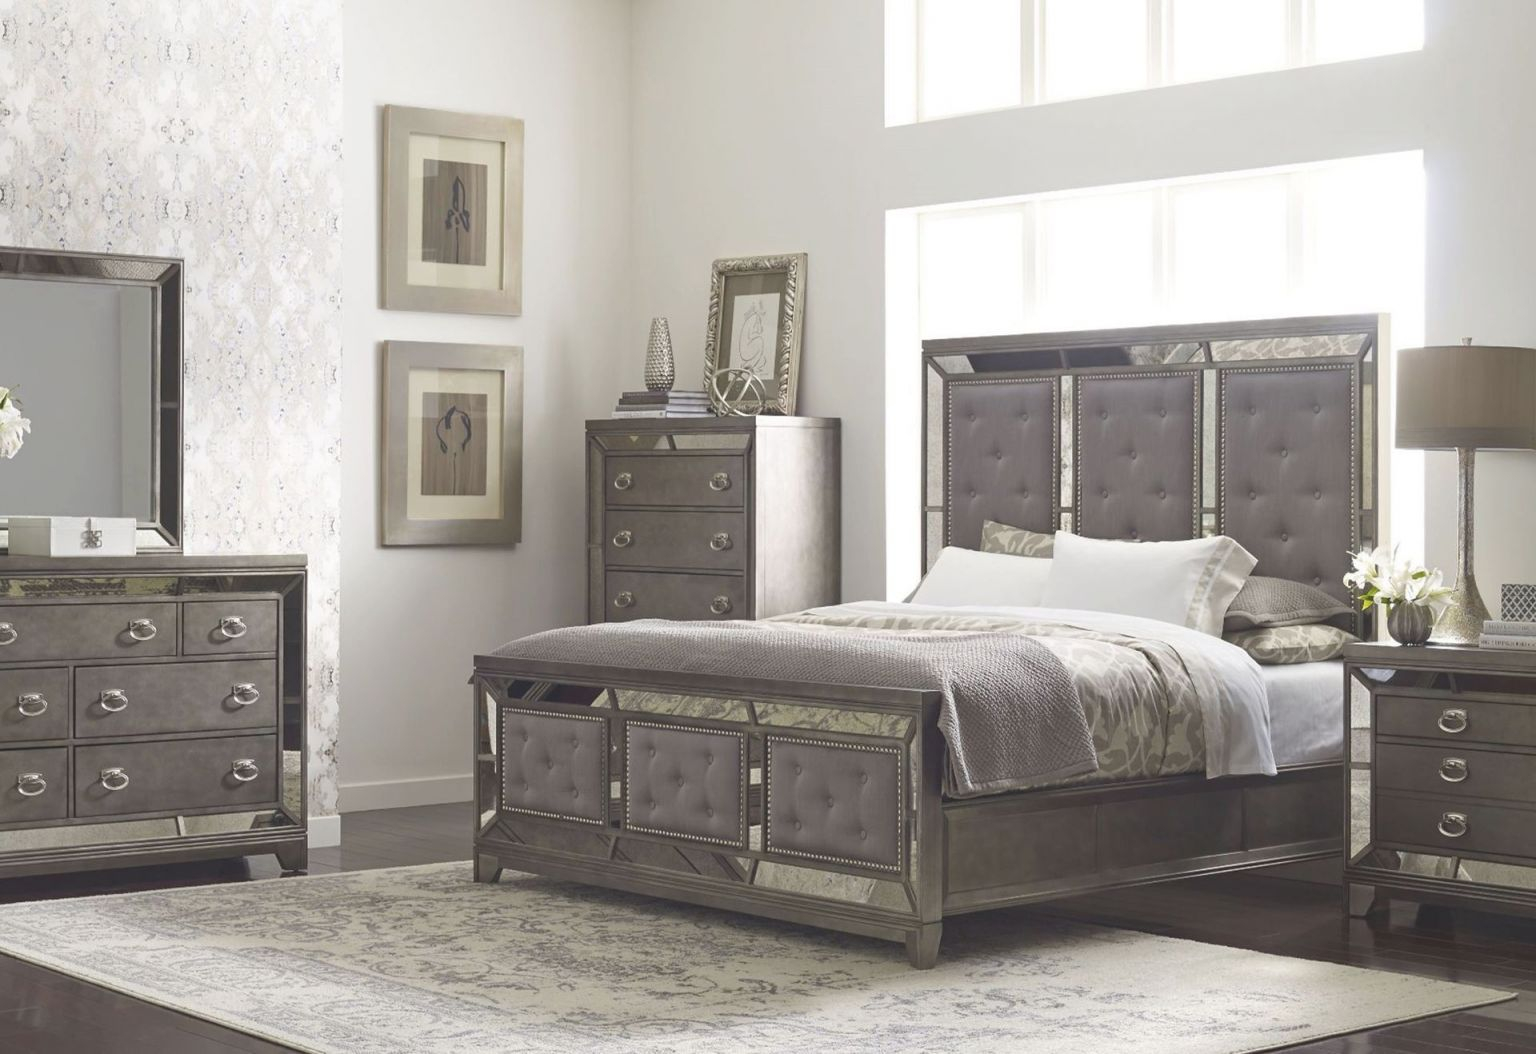 Luxury Bedroom Set Queen Size Awesome Decors